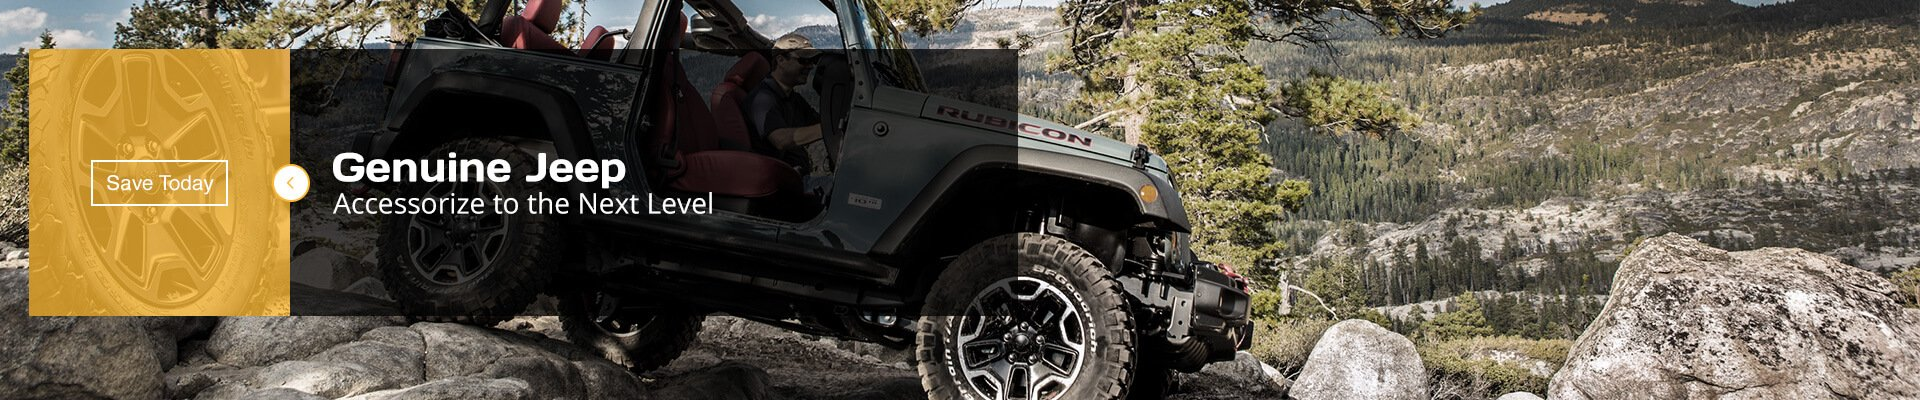 Jeep Genuine Accessories